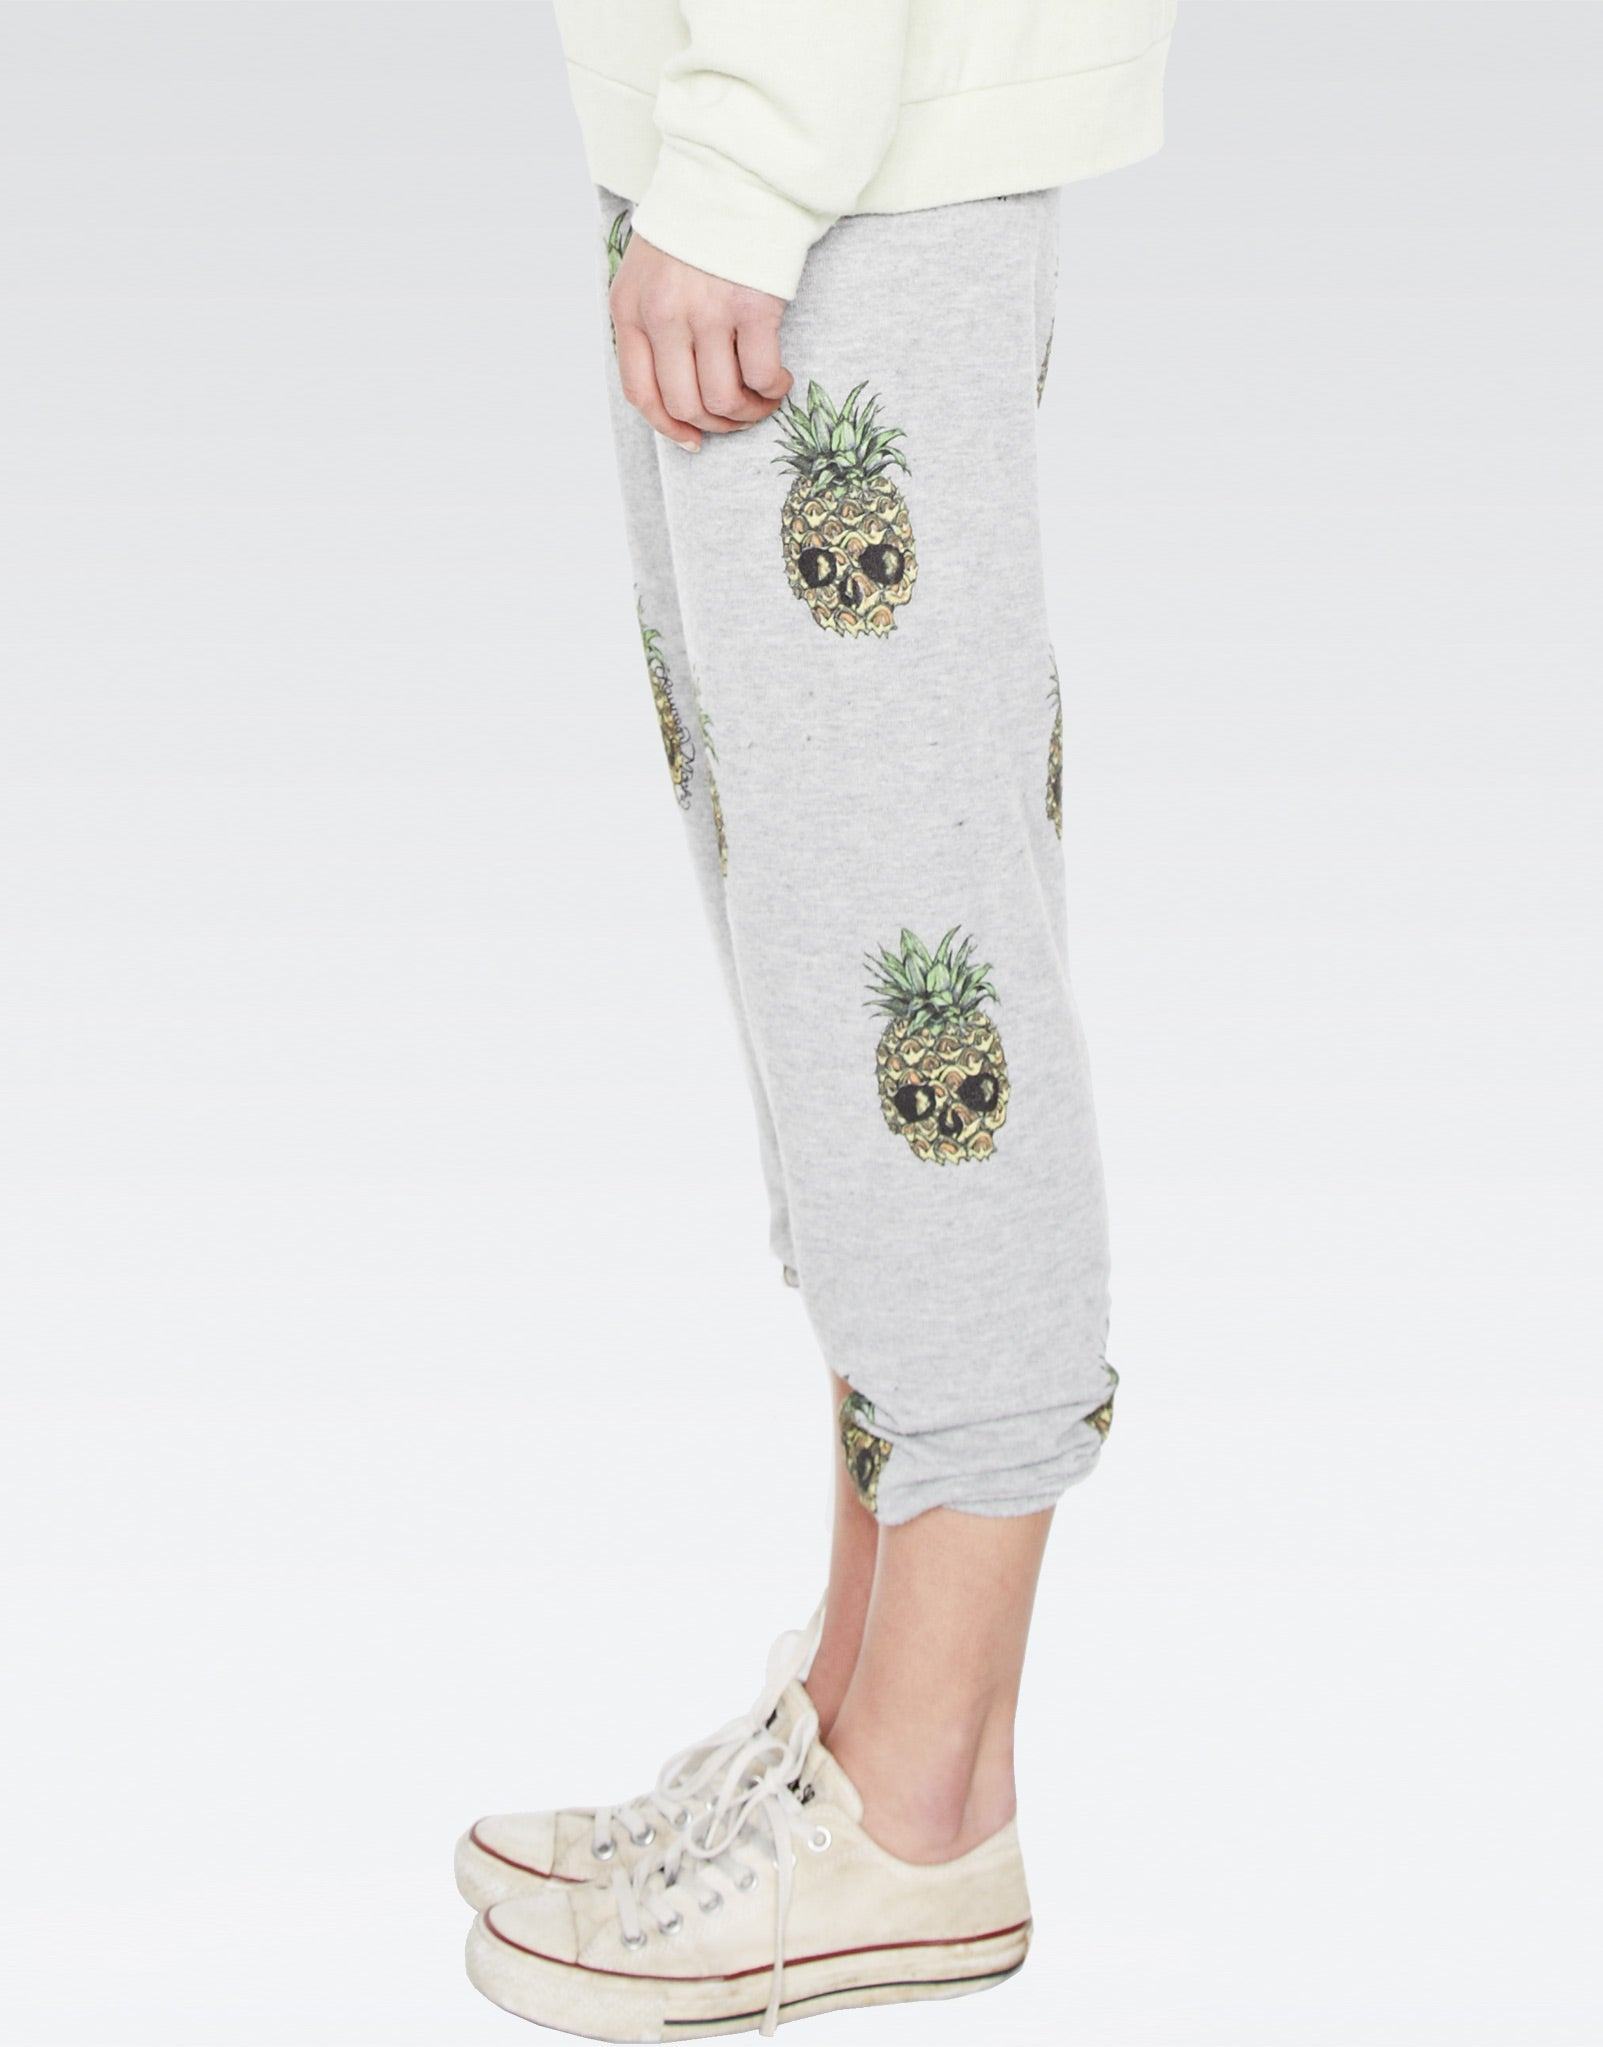 Alana Mini Color Pineapple Skulls Crop Sweat Pant - Lauren Moshi - 3